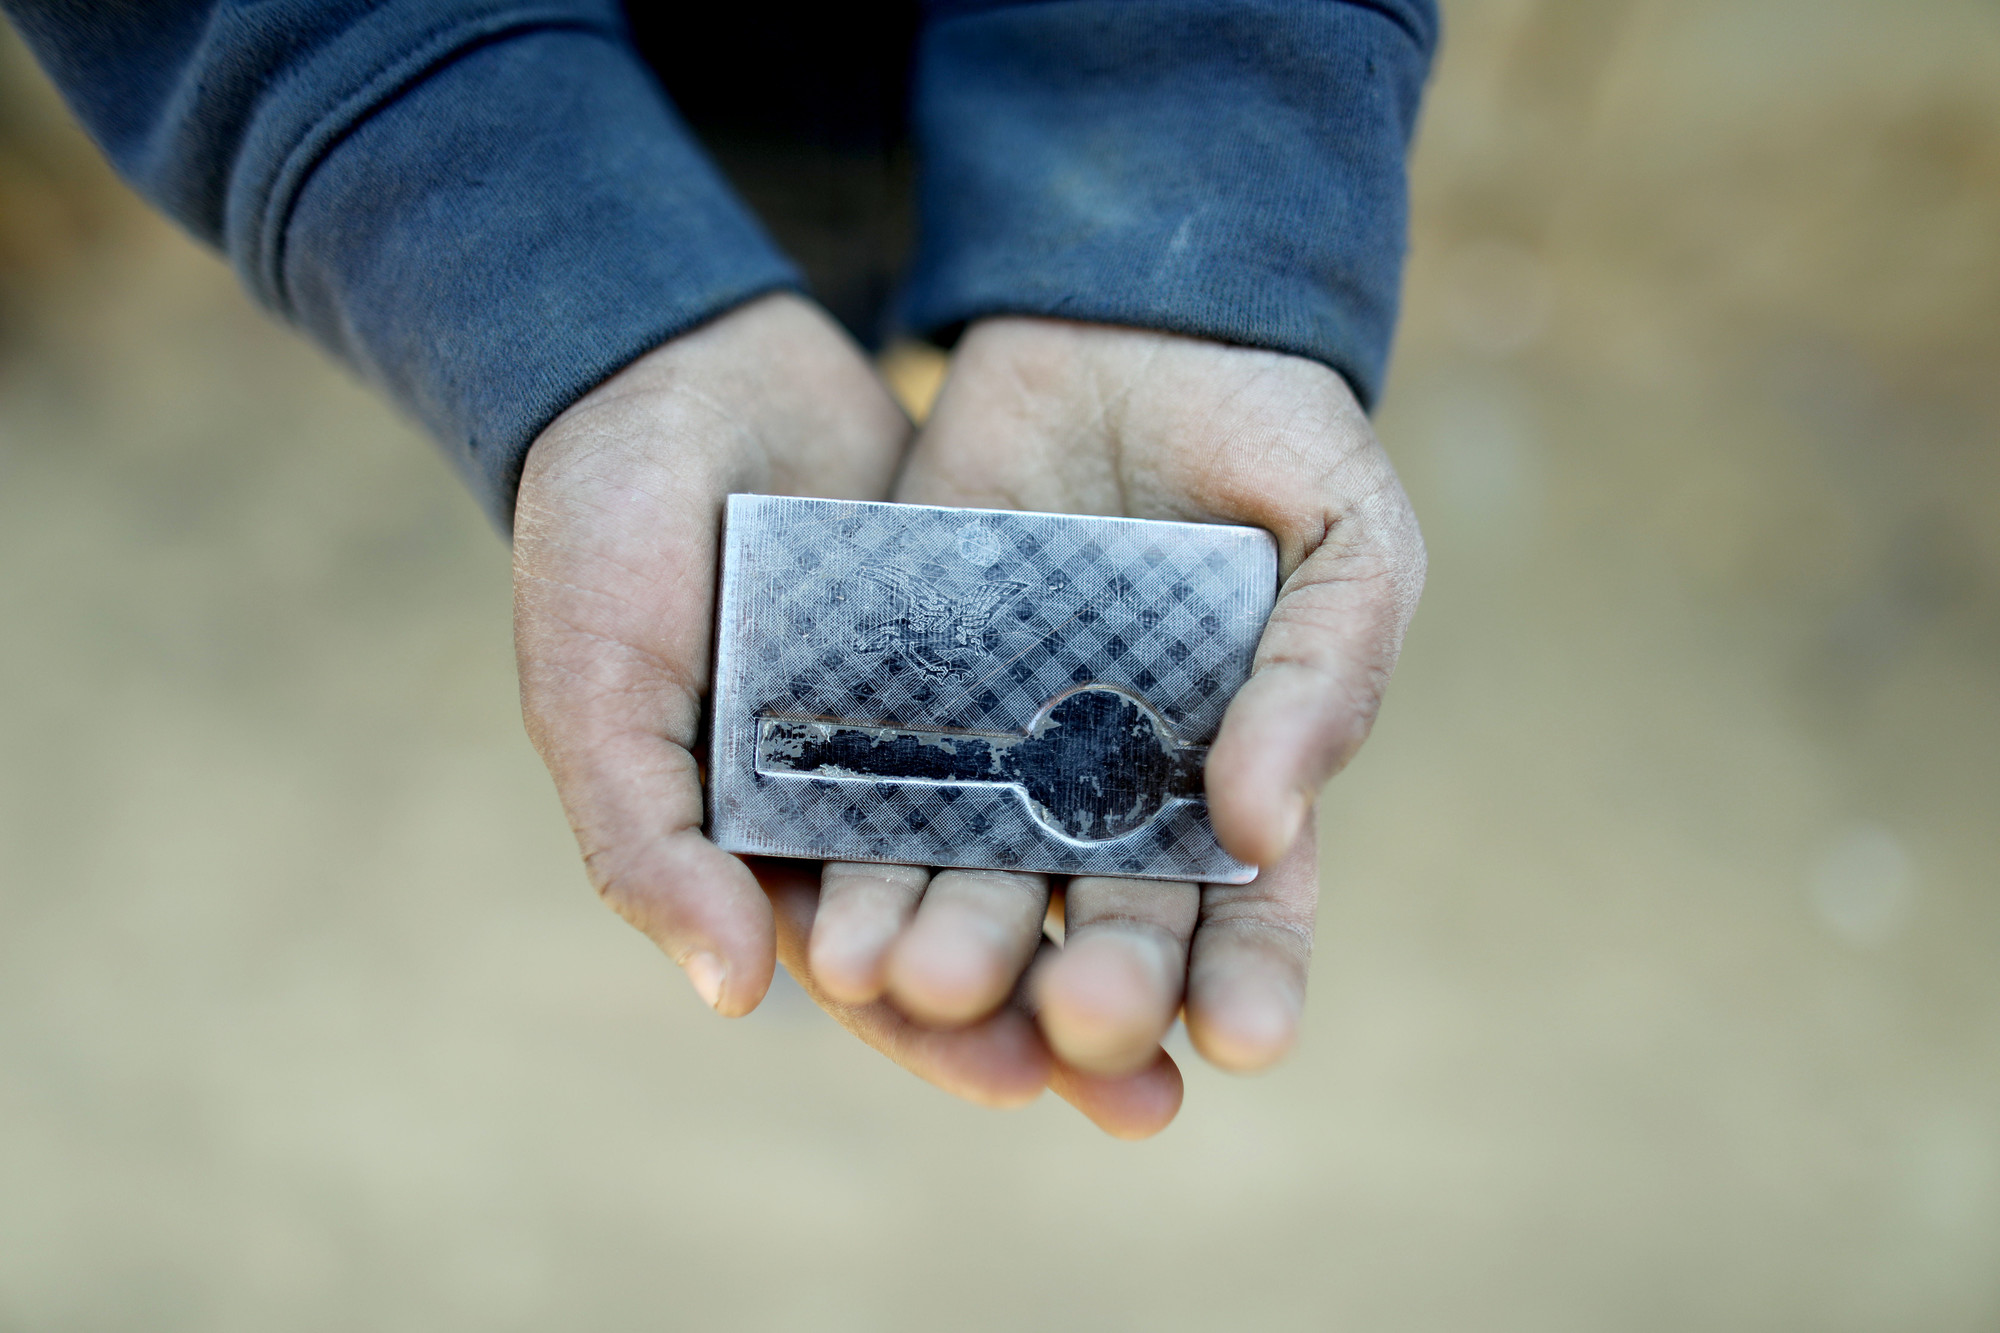 Five-year old Rohit found this belt buckle. He keeps it with him because it's shiny and – he believes – valuable.